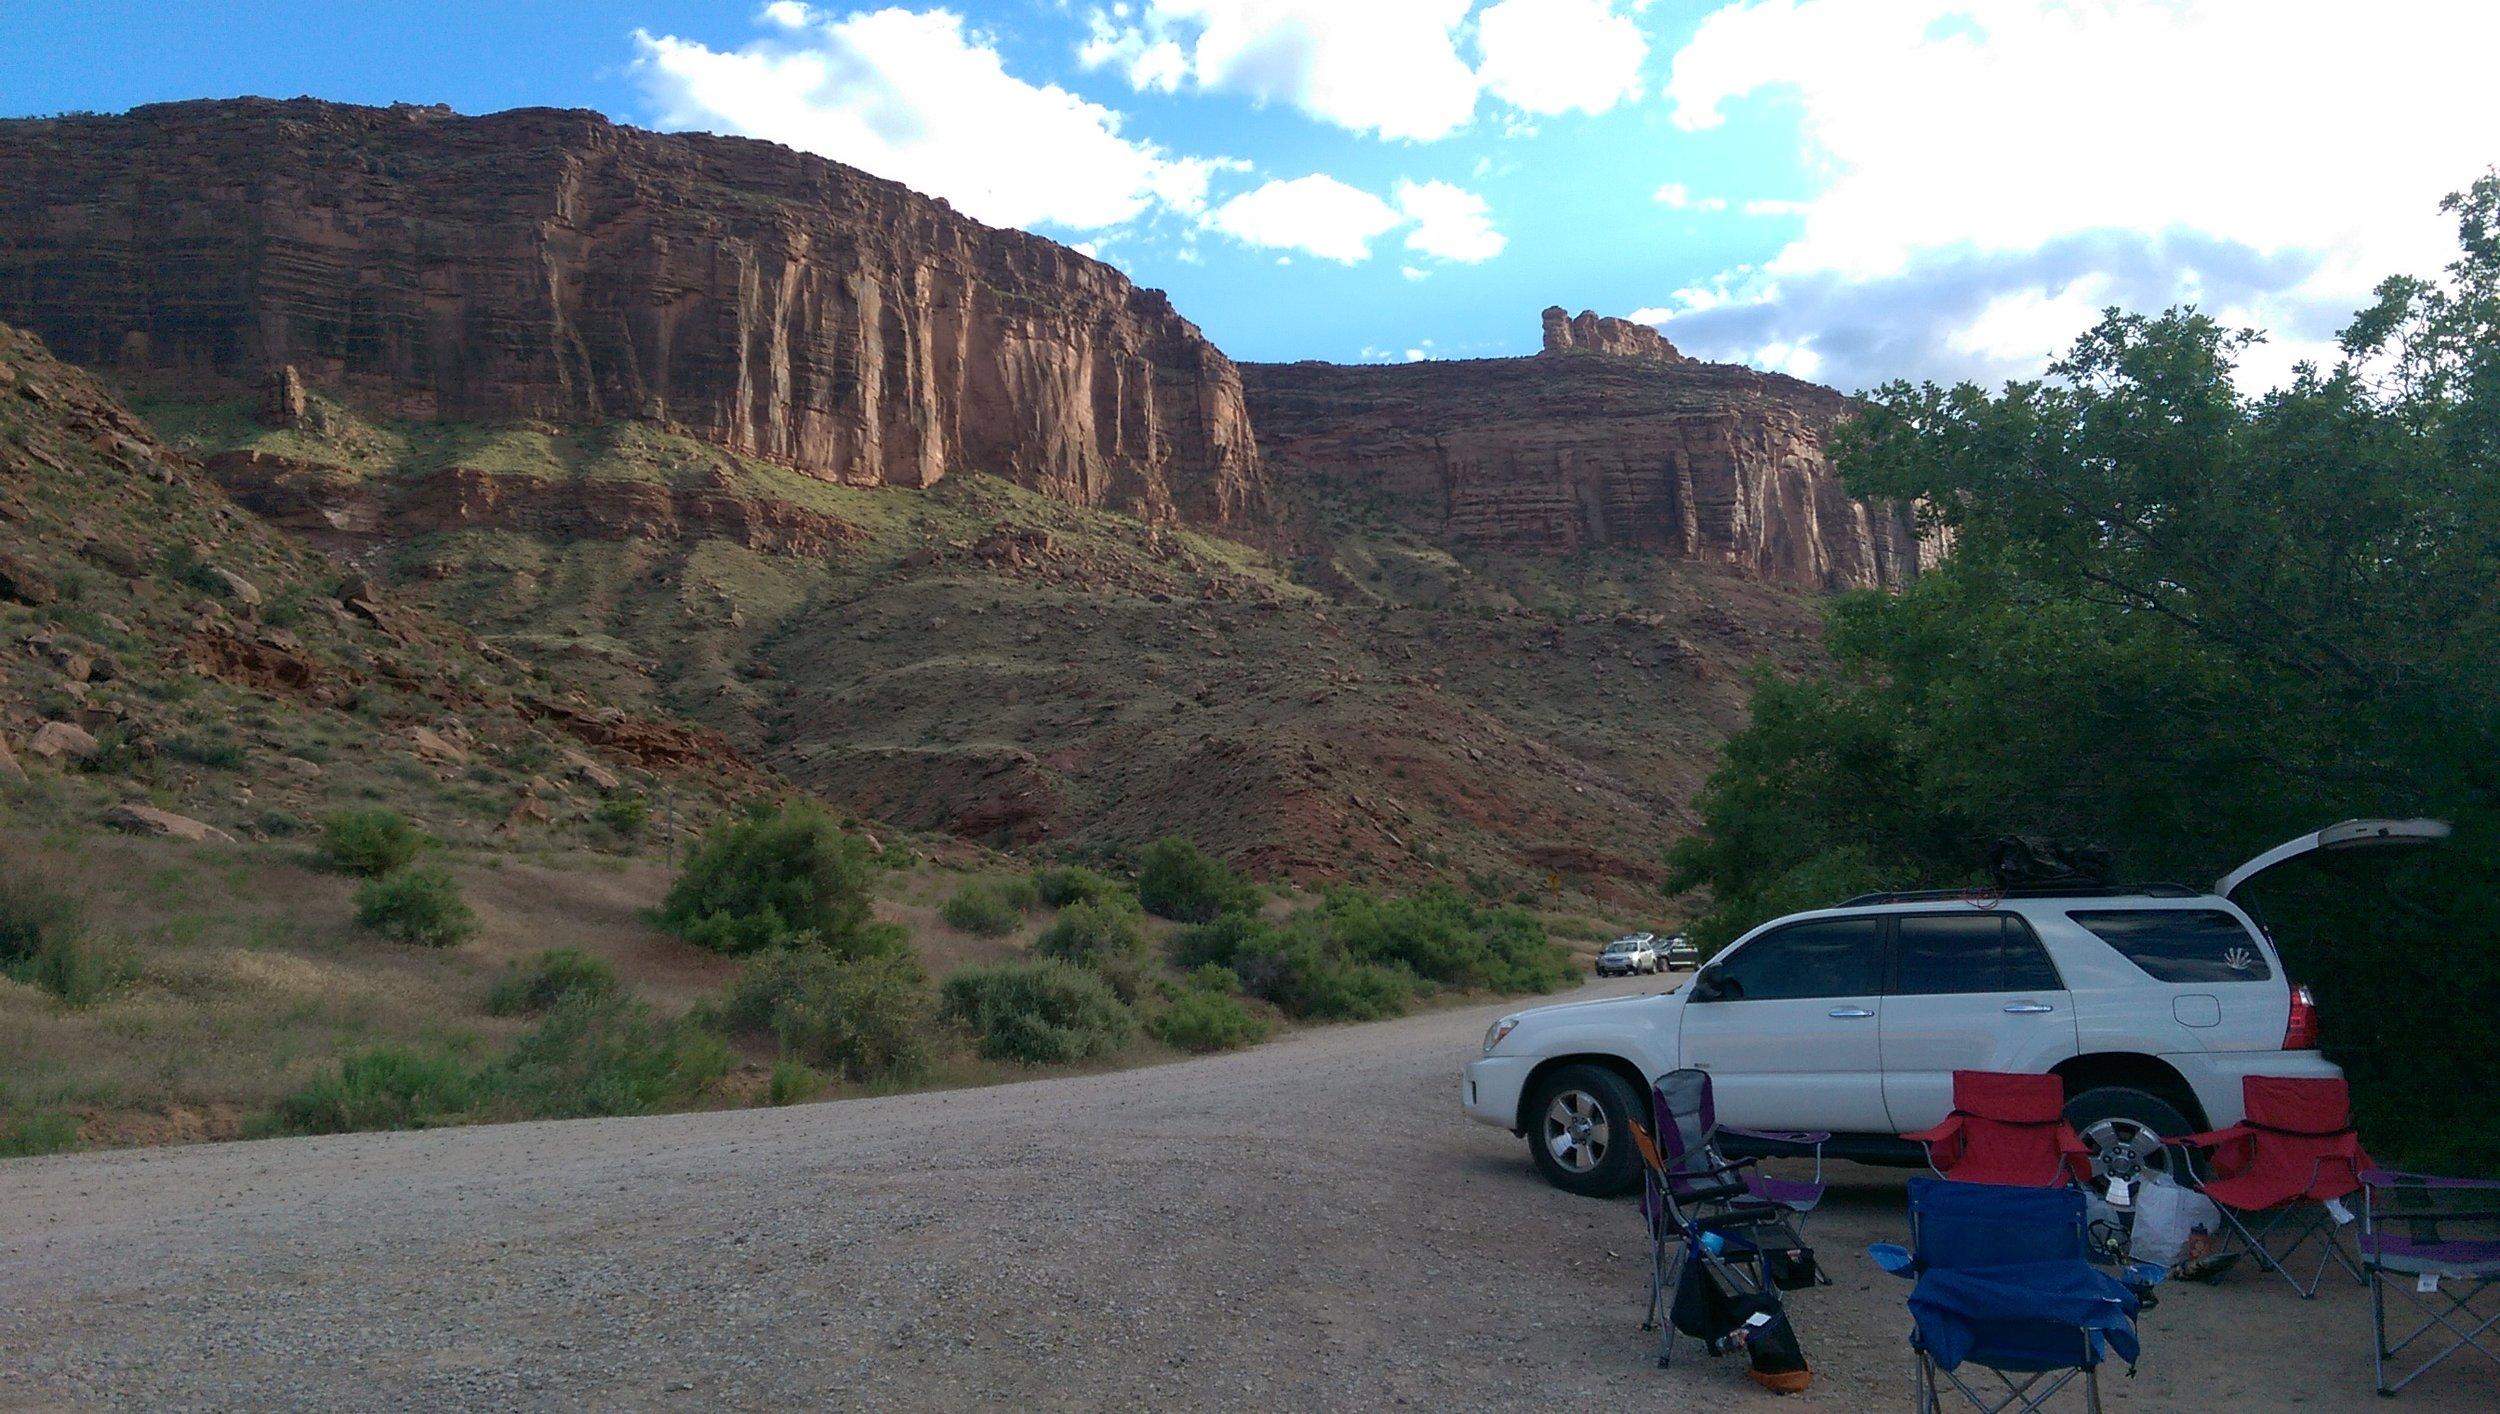 Our campsite view in Moab